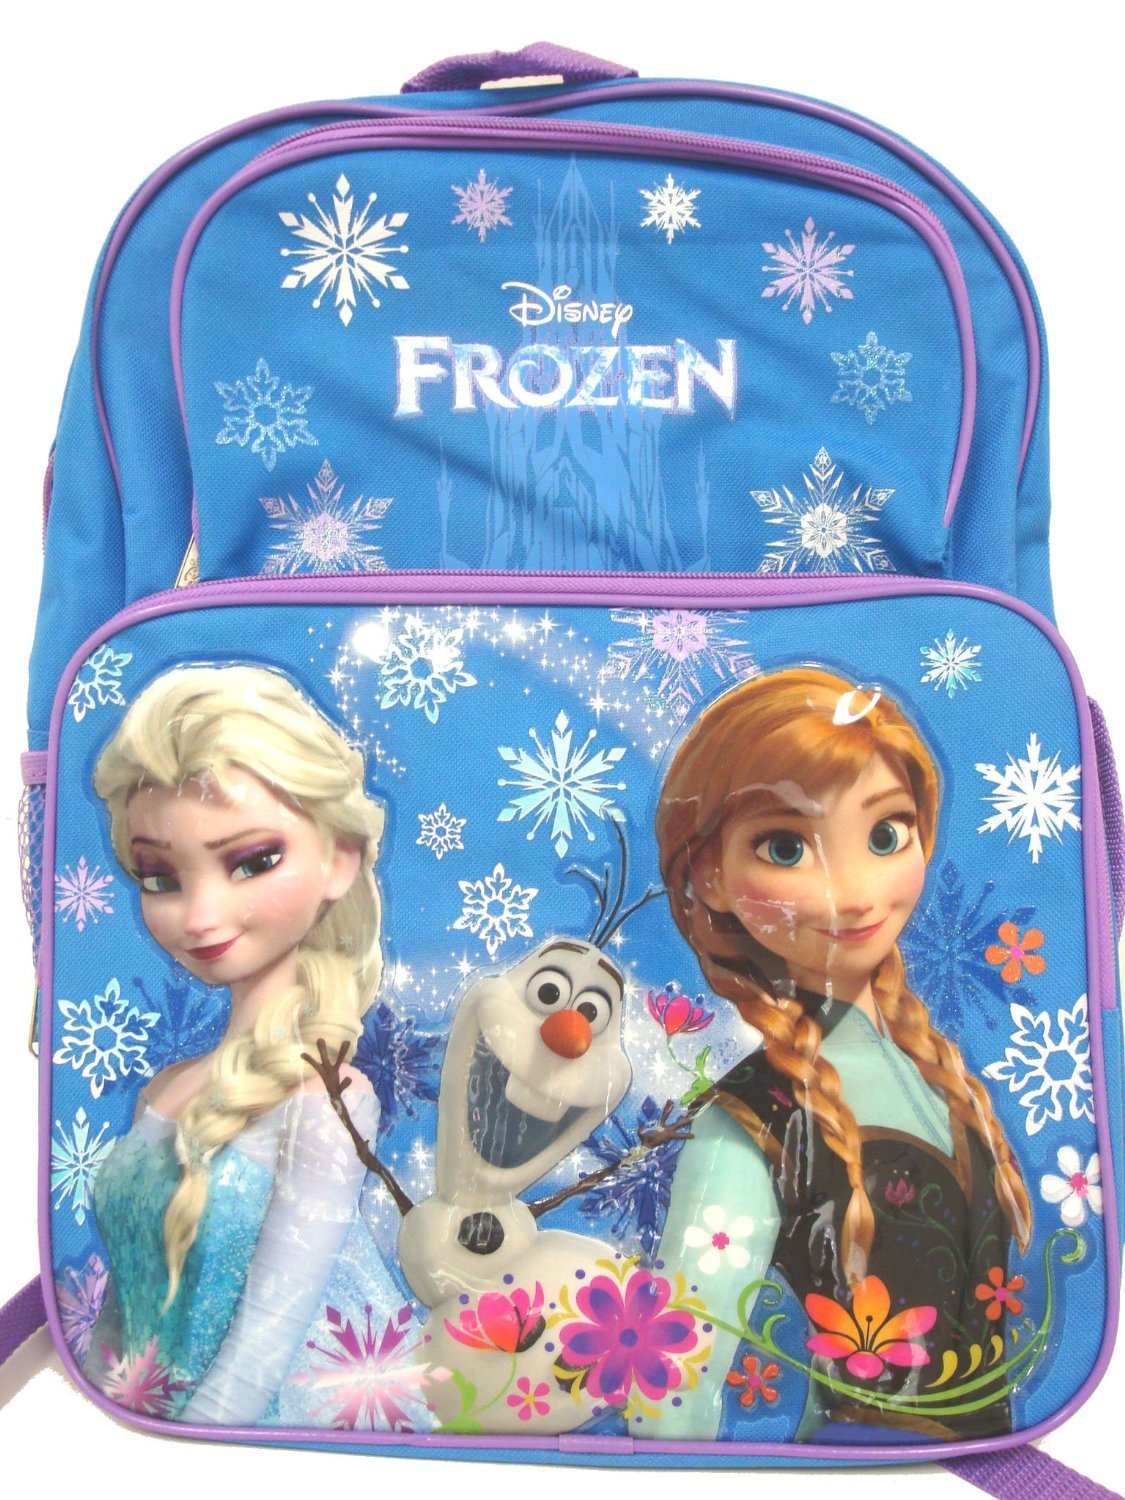 Disney Frozen Princess Elsa and Anna School Backpack 16